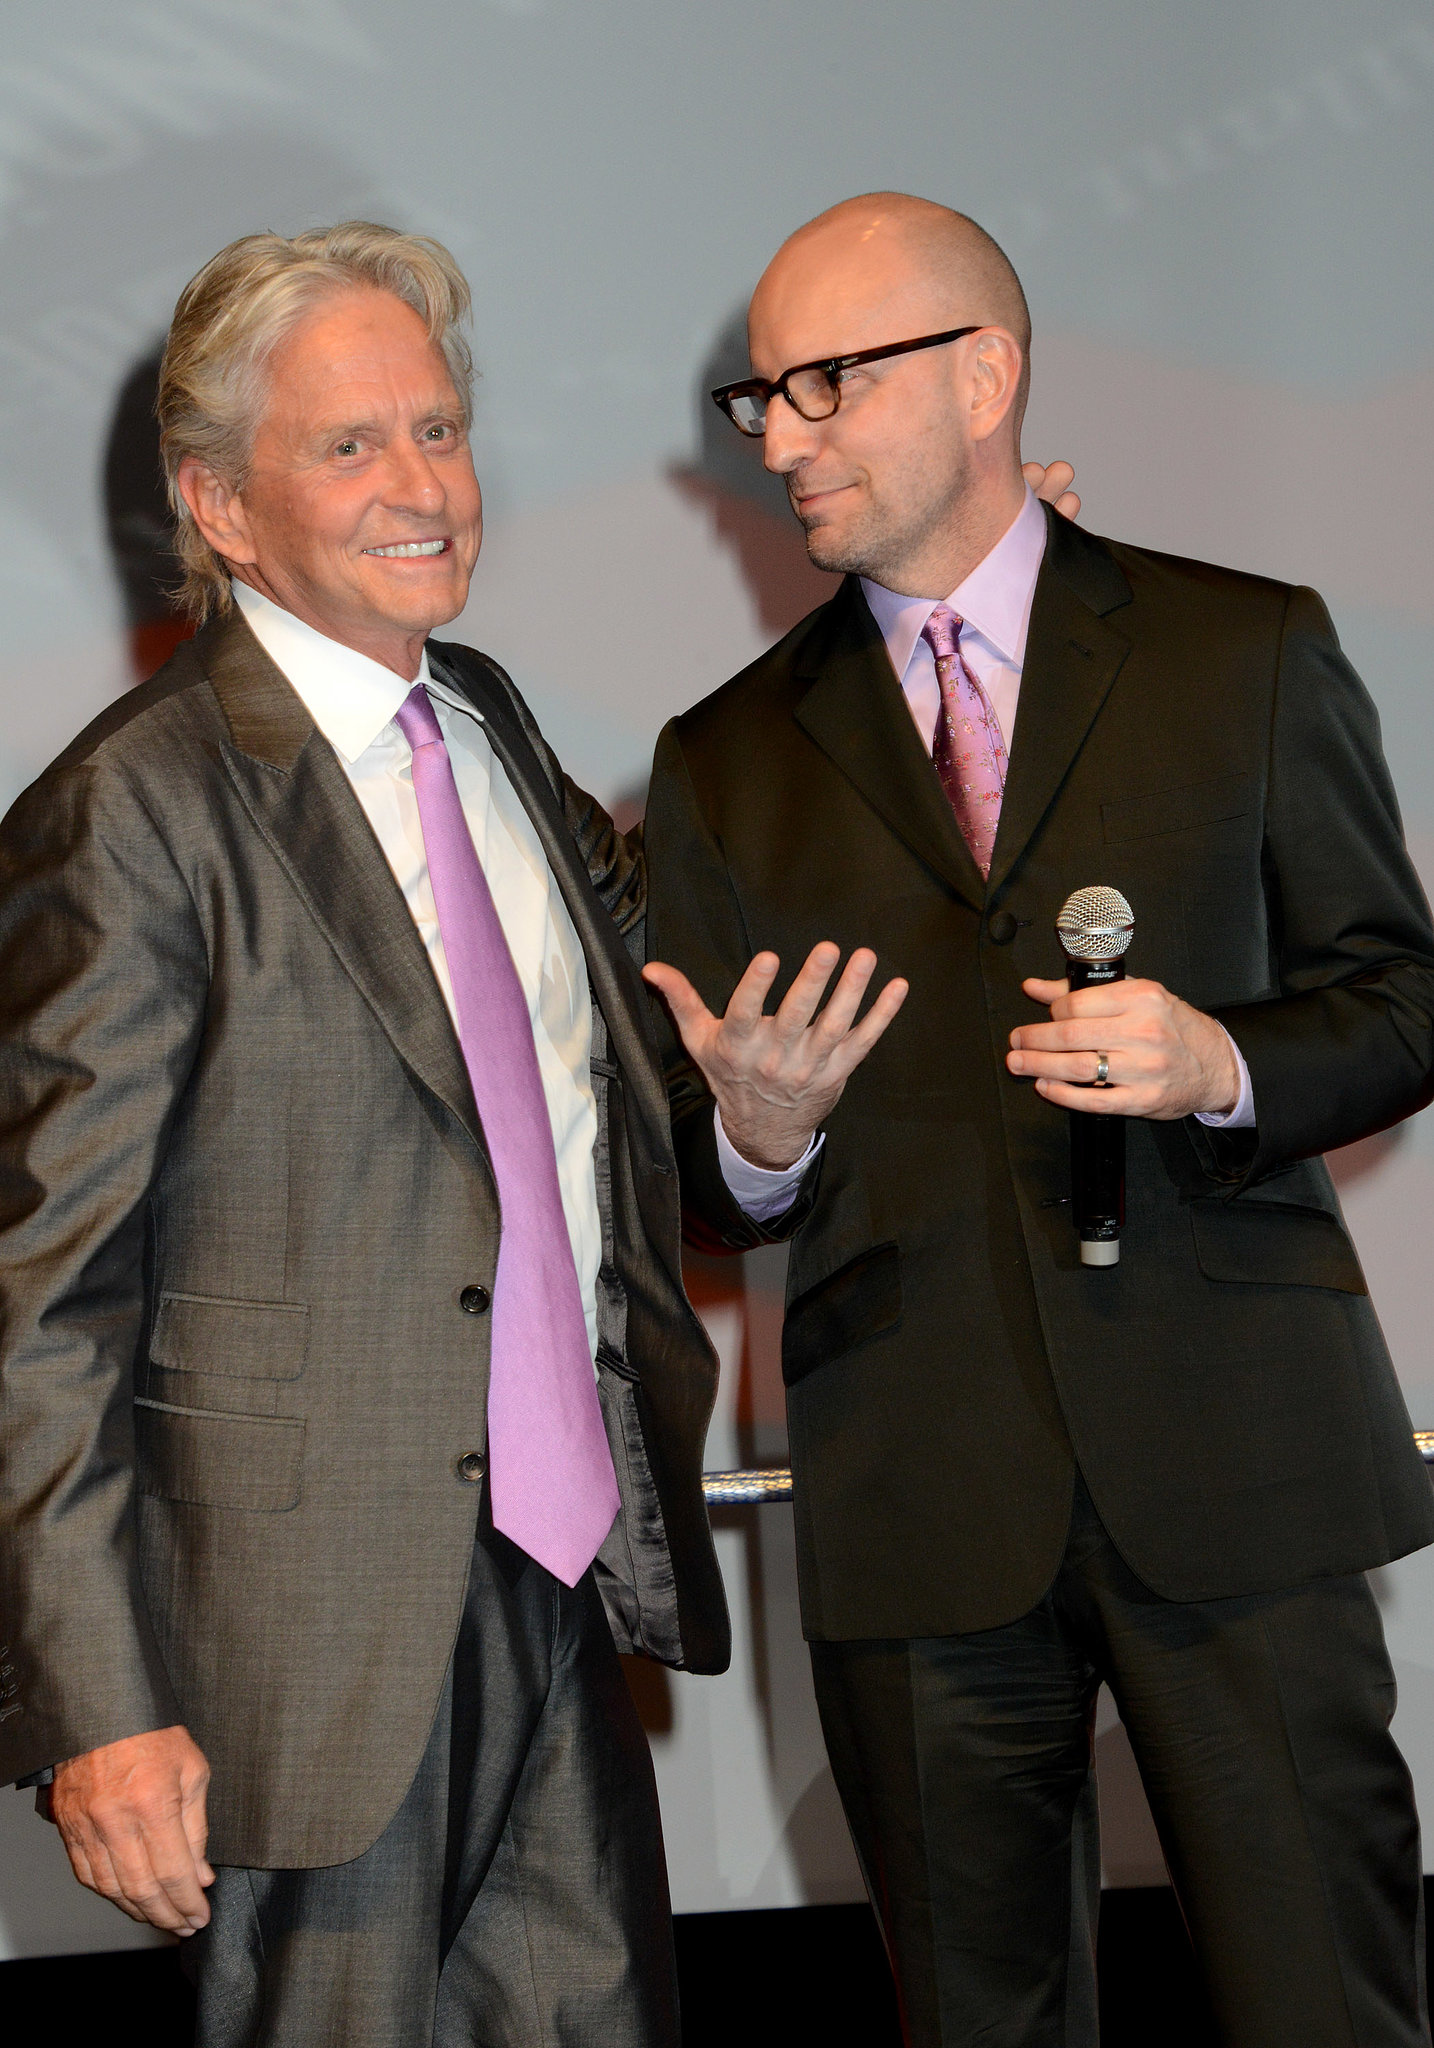 Photo of Steven Soderbergh & his friend actor  Michael Douglas - Cast of Traffic